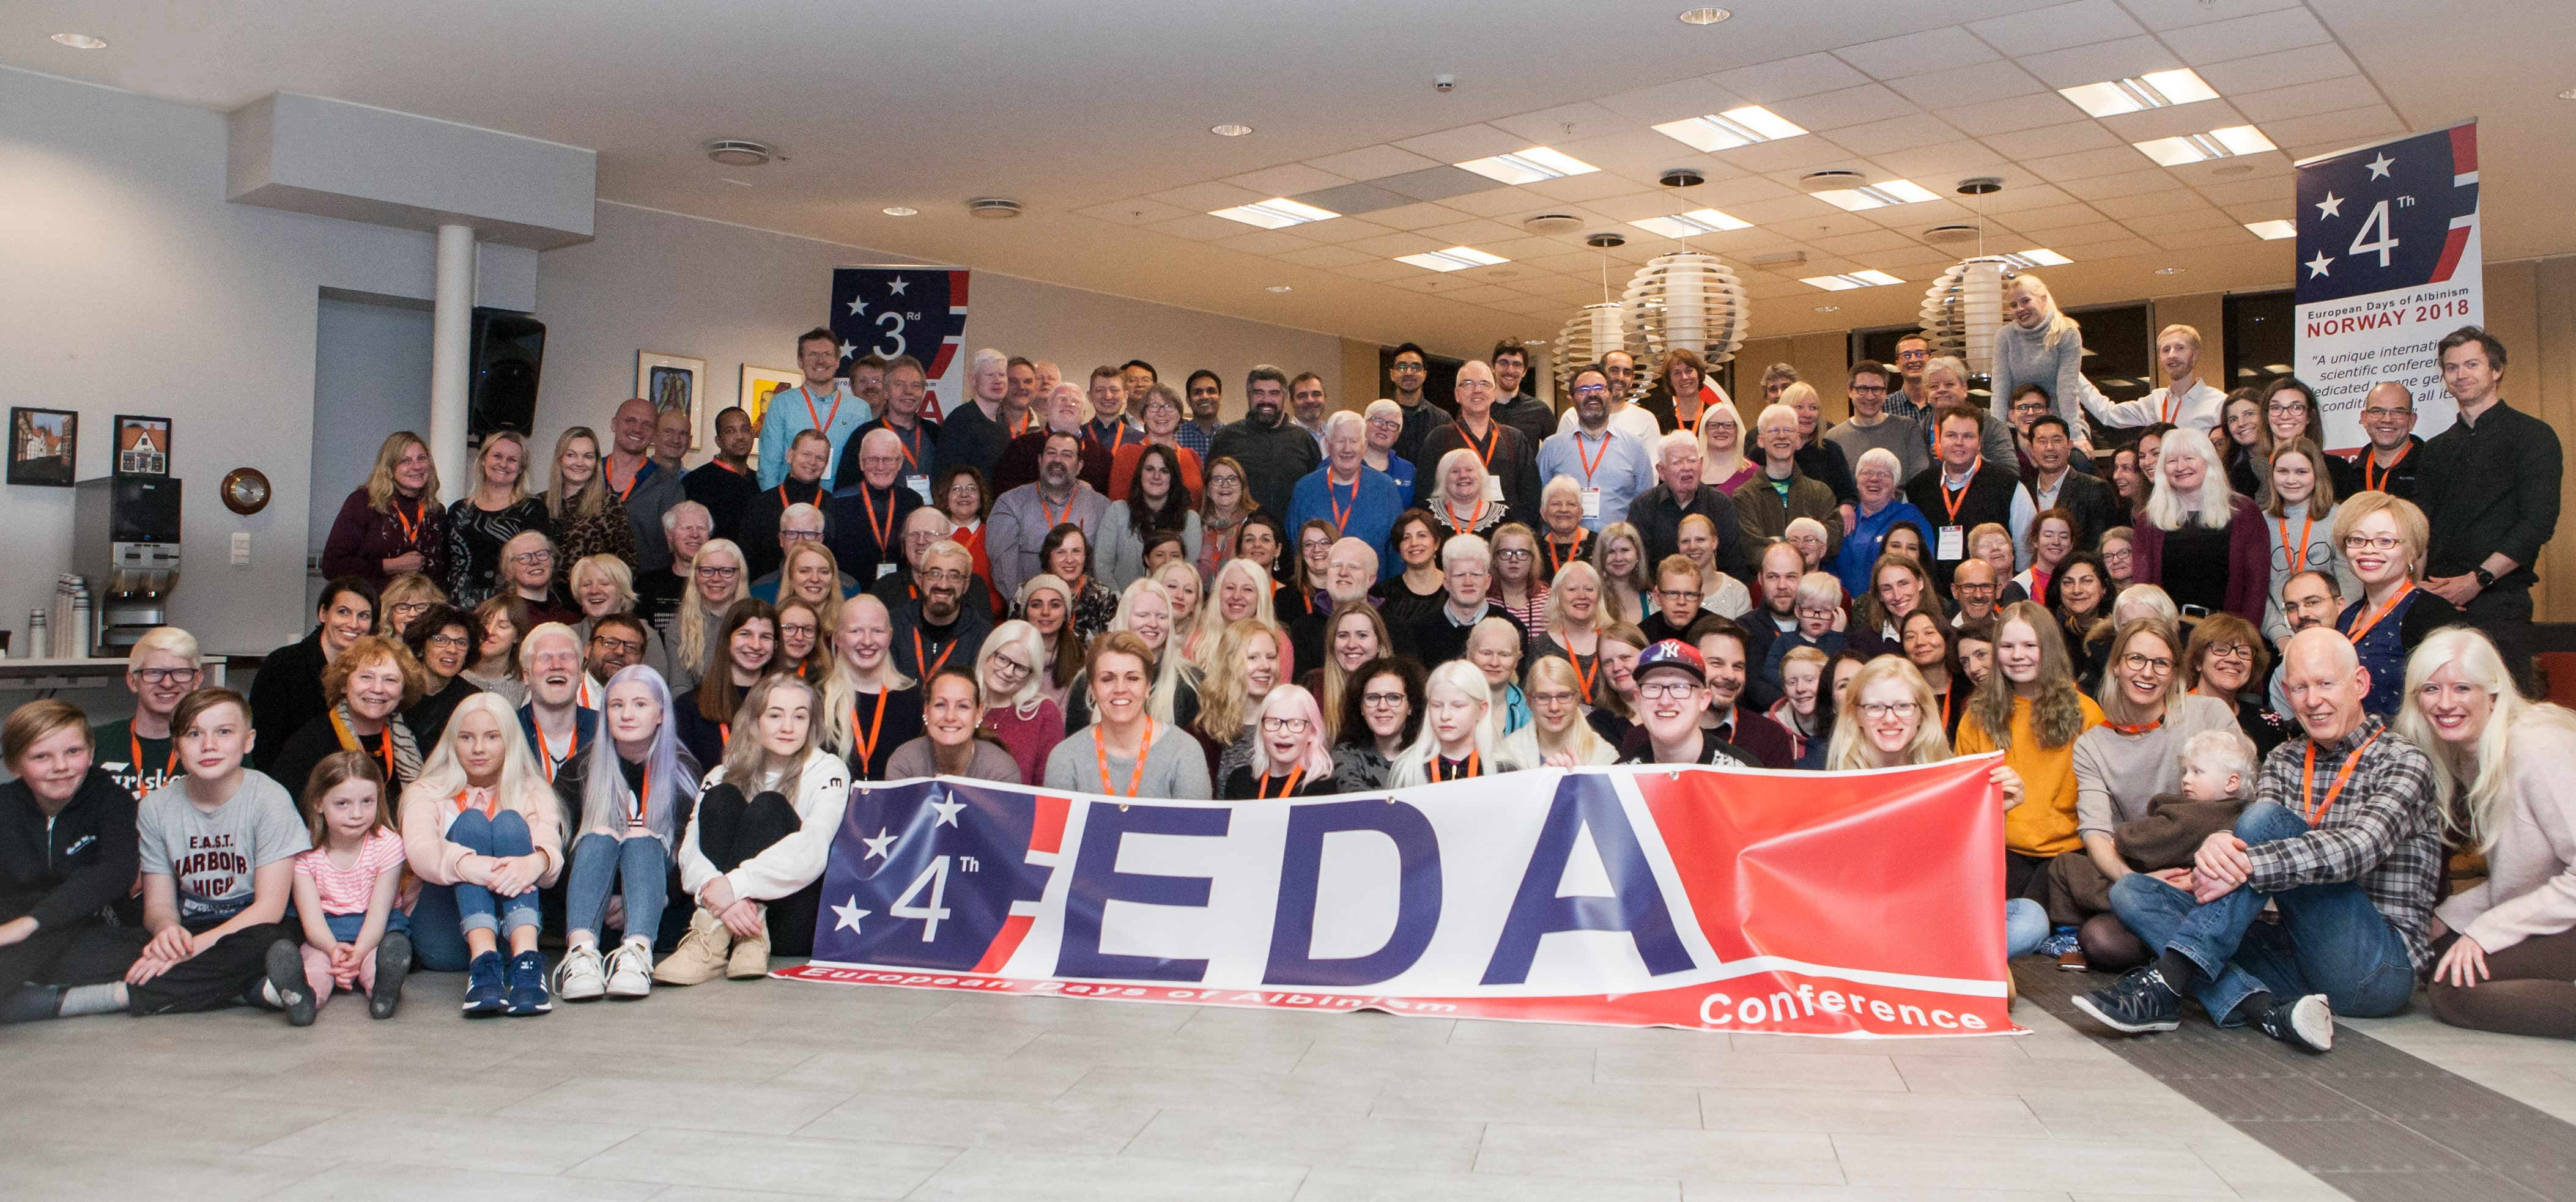 4th EDA group photo